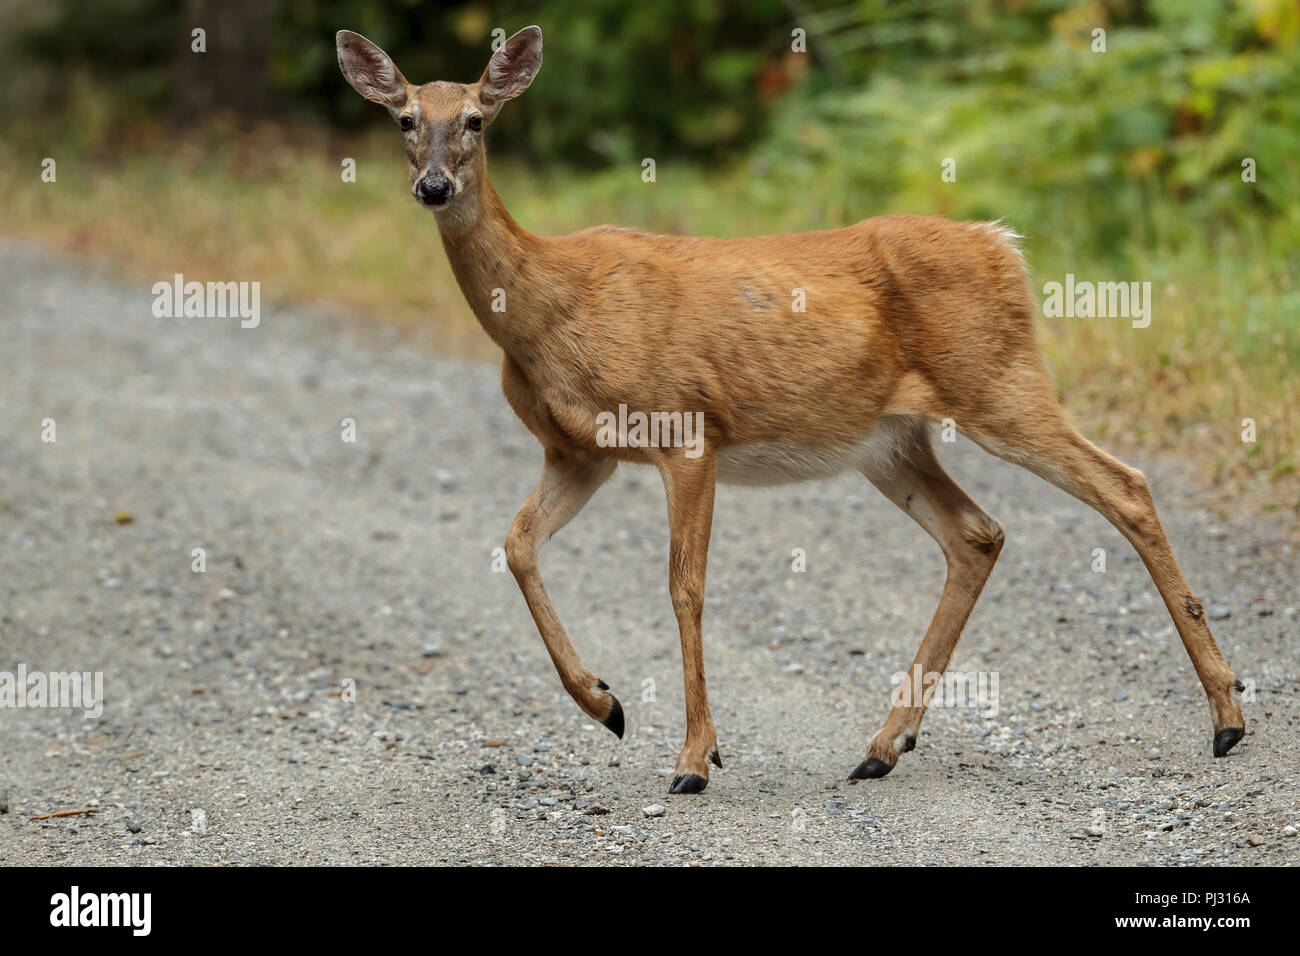 A white tailed deer crosses a gravel road near Hauser, Idaho. - Stock Image